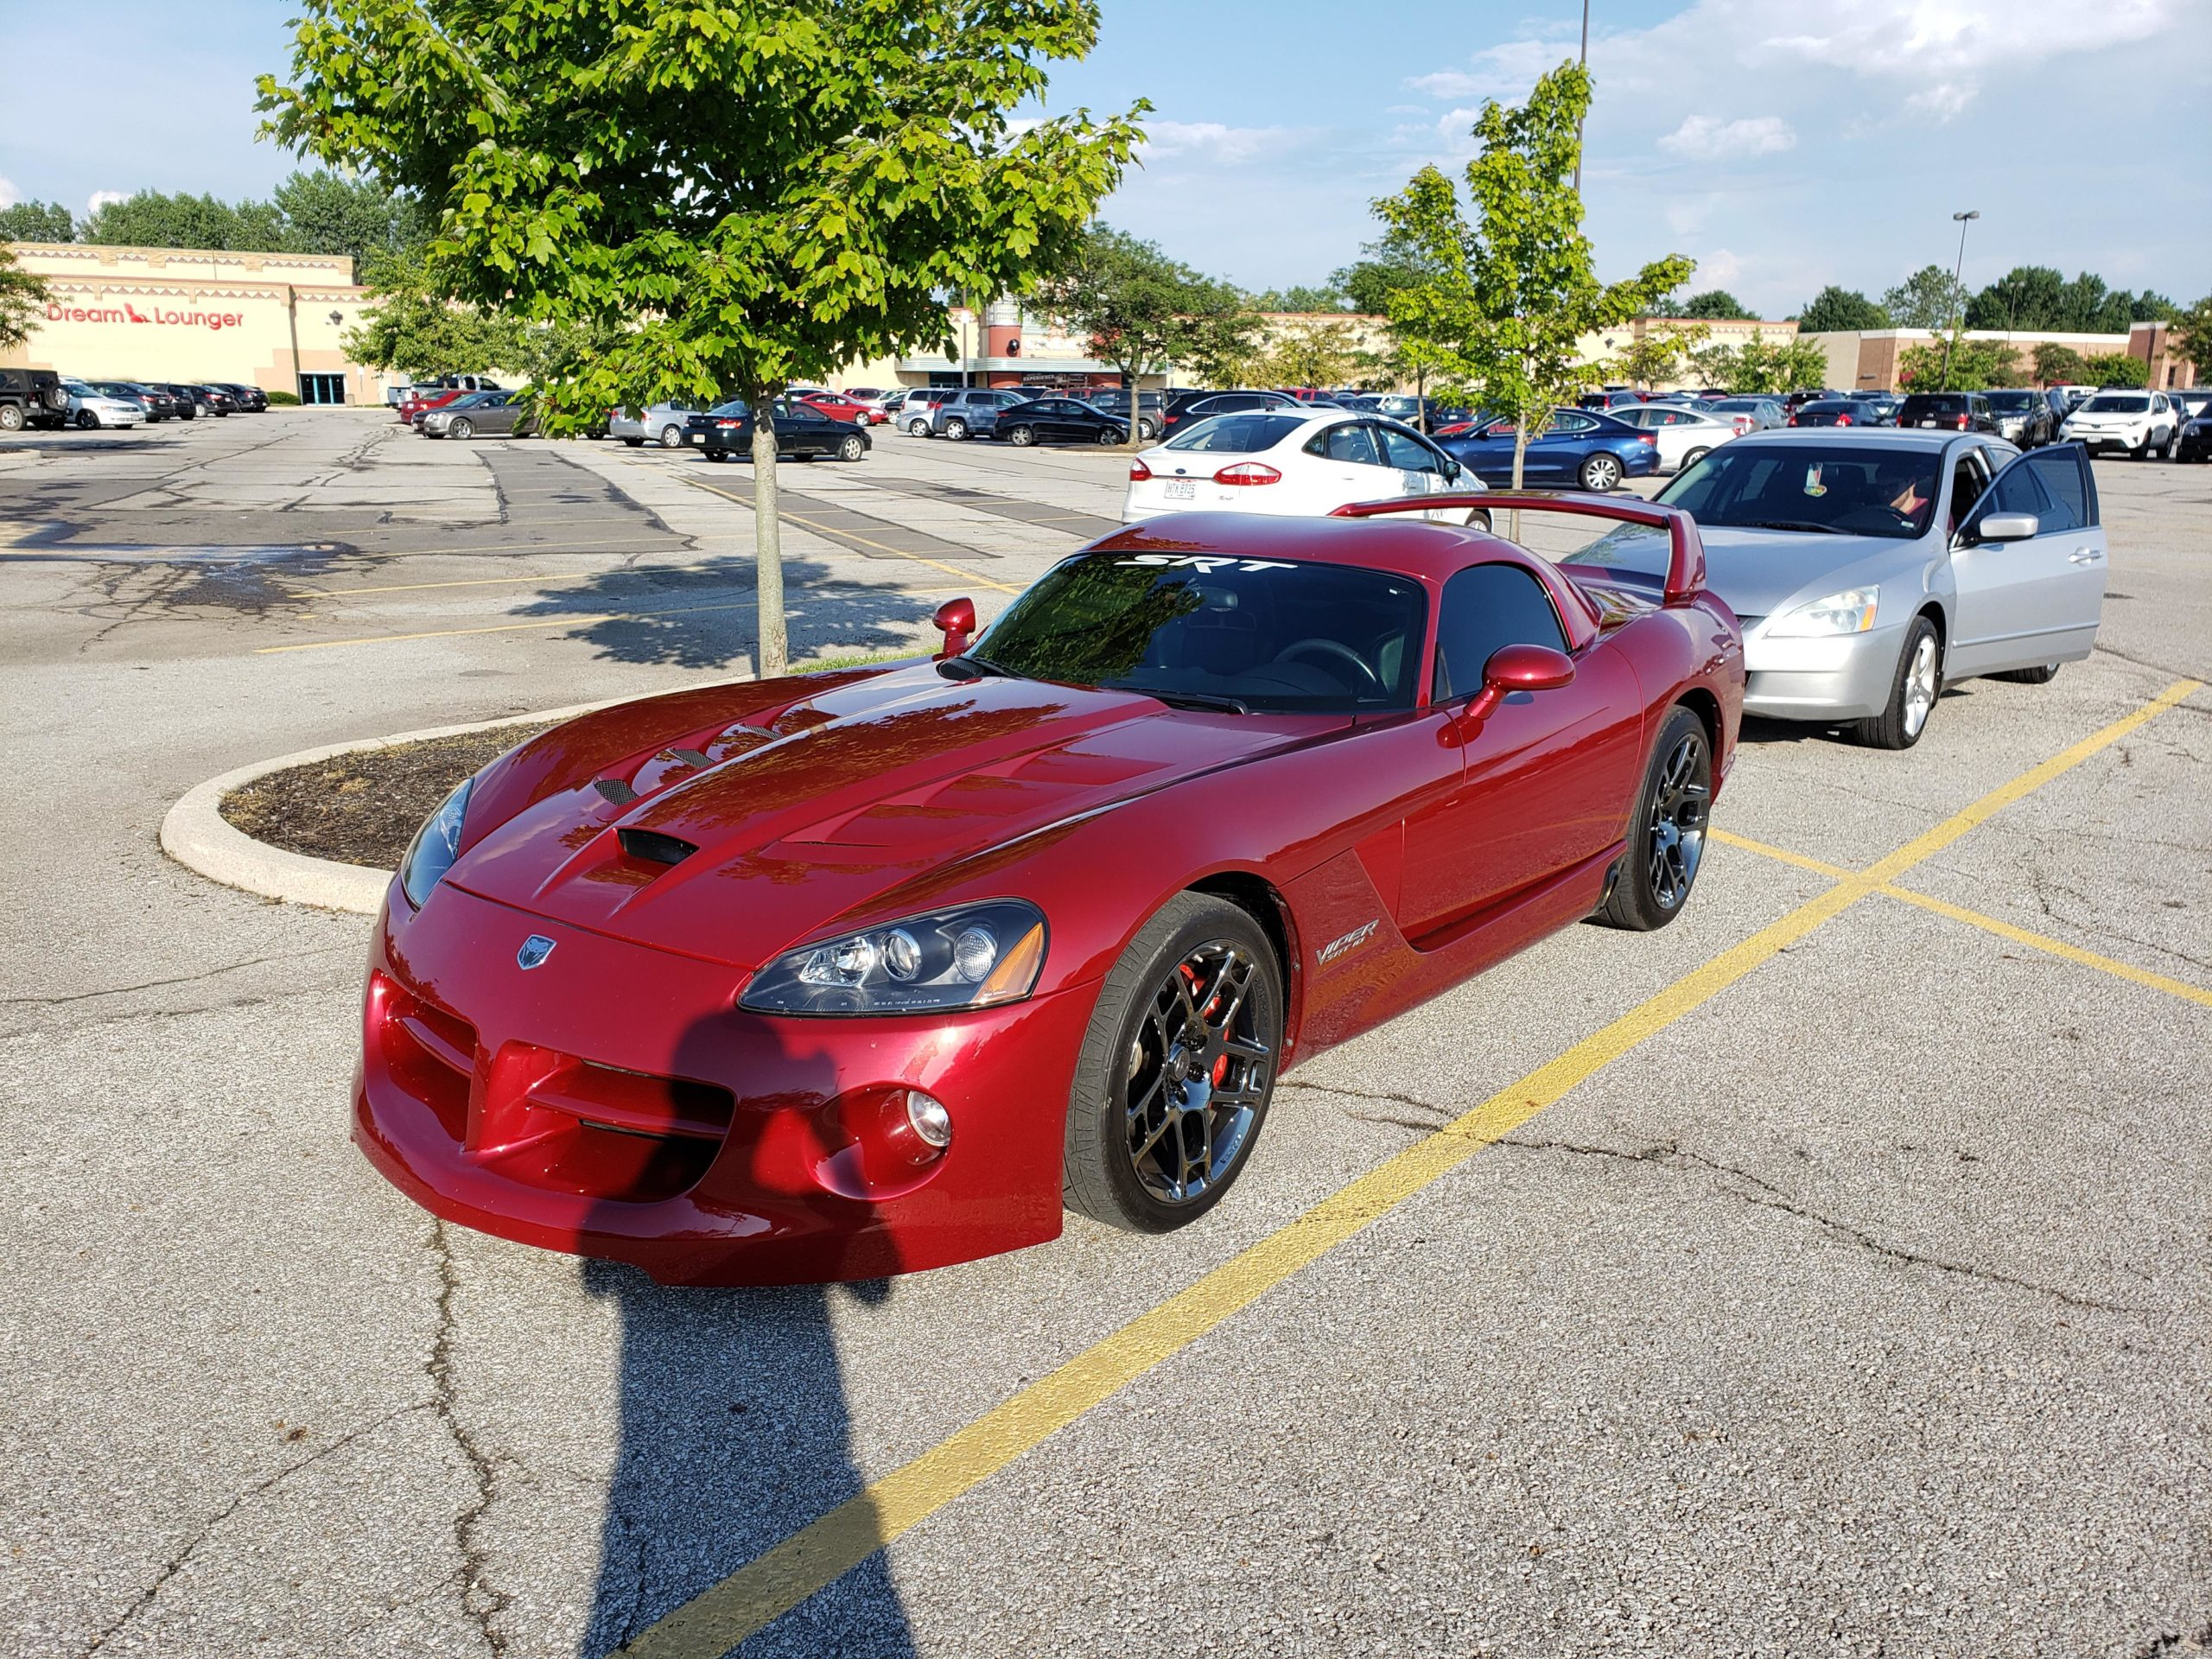 Spotted a viper out in the wild